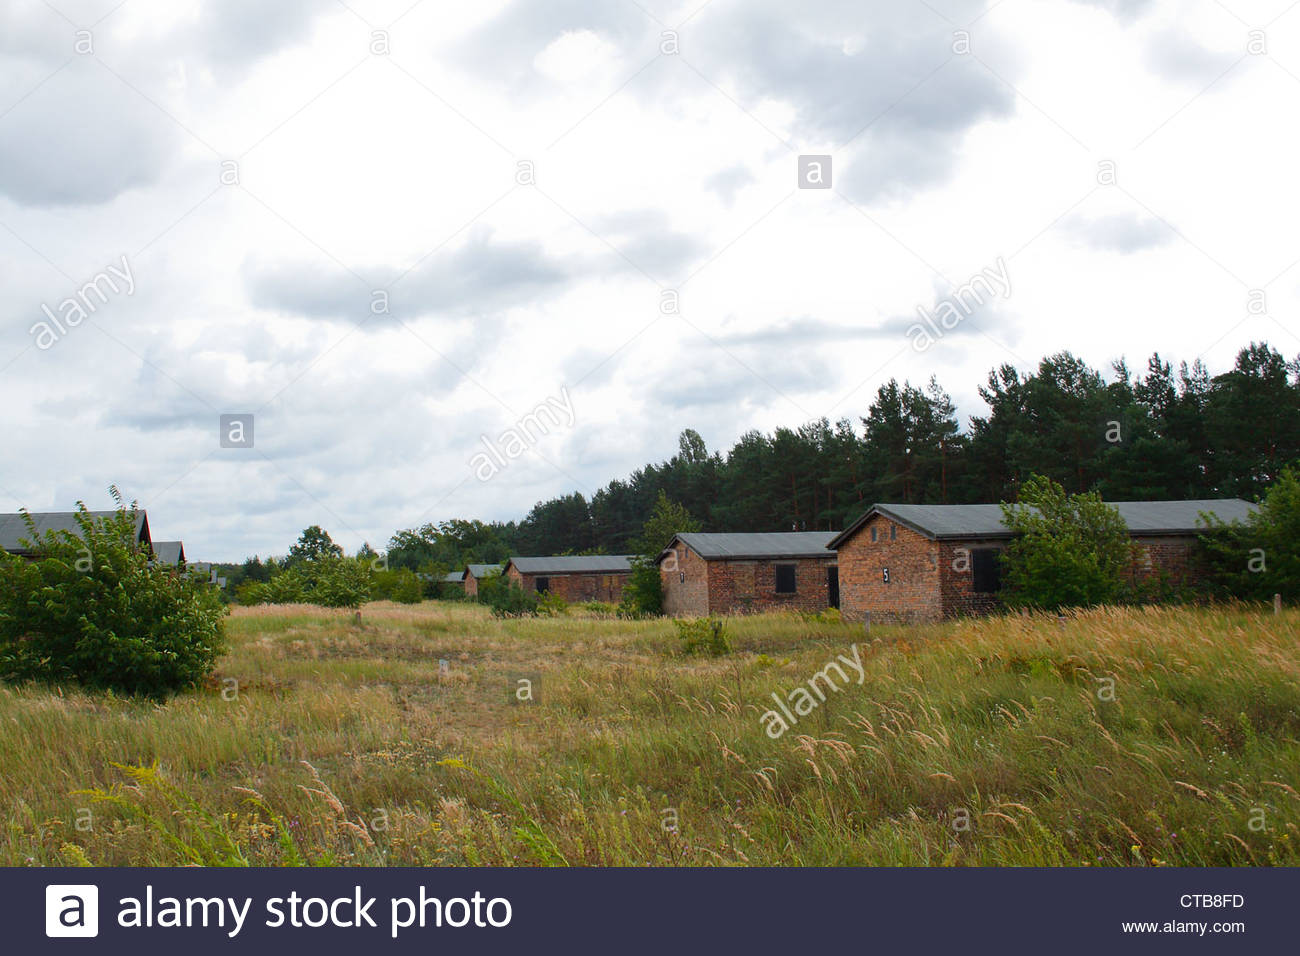 Memorial in Sachsenhausen concentration camp, in Oranienburg, Germany. - Stock Image